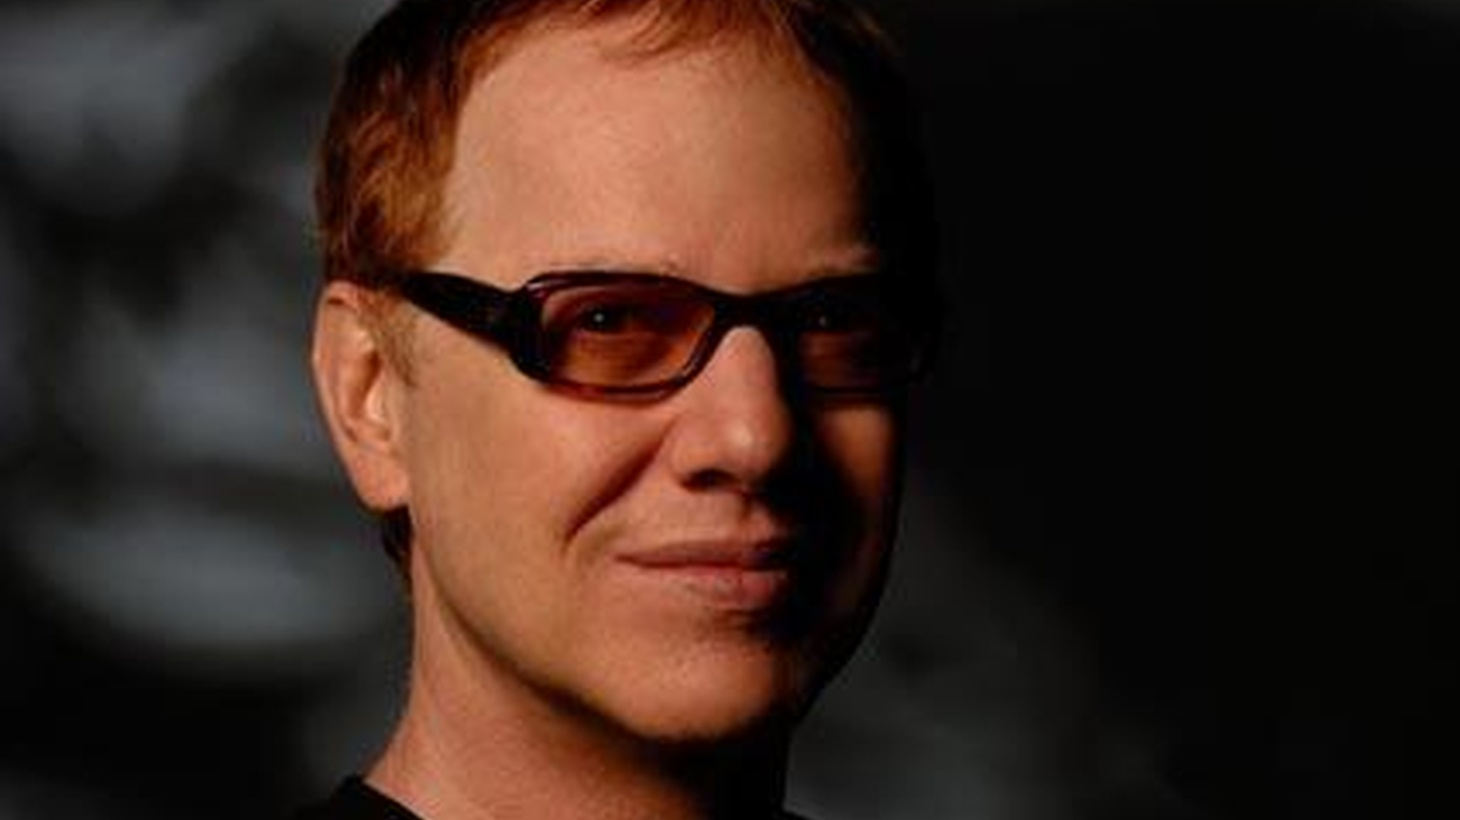 Renowned film composer Danny Elfman joins guest host Chris Douridas to talk about his work with director Tim Burton -- a collaboration that spans 25 years -- highlighting scores to such iconic films as Pee-Wee's Big Adventure to the more recent Alice In Wonderland. Hear it live on Morning Becomes Eclectic at 11:30am.